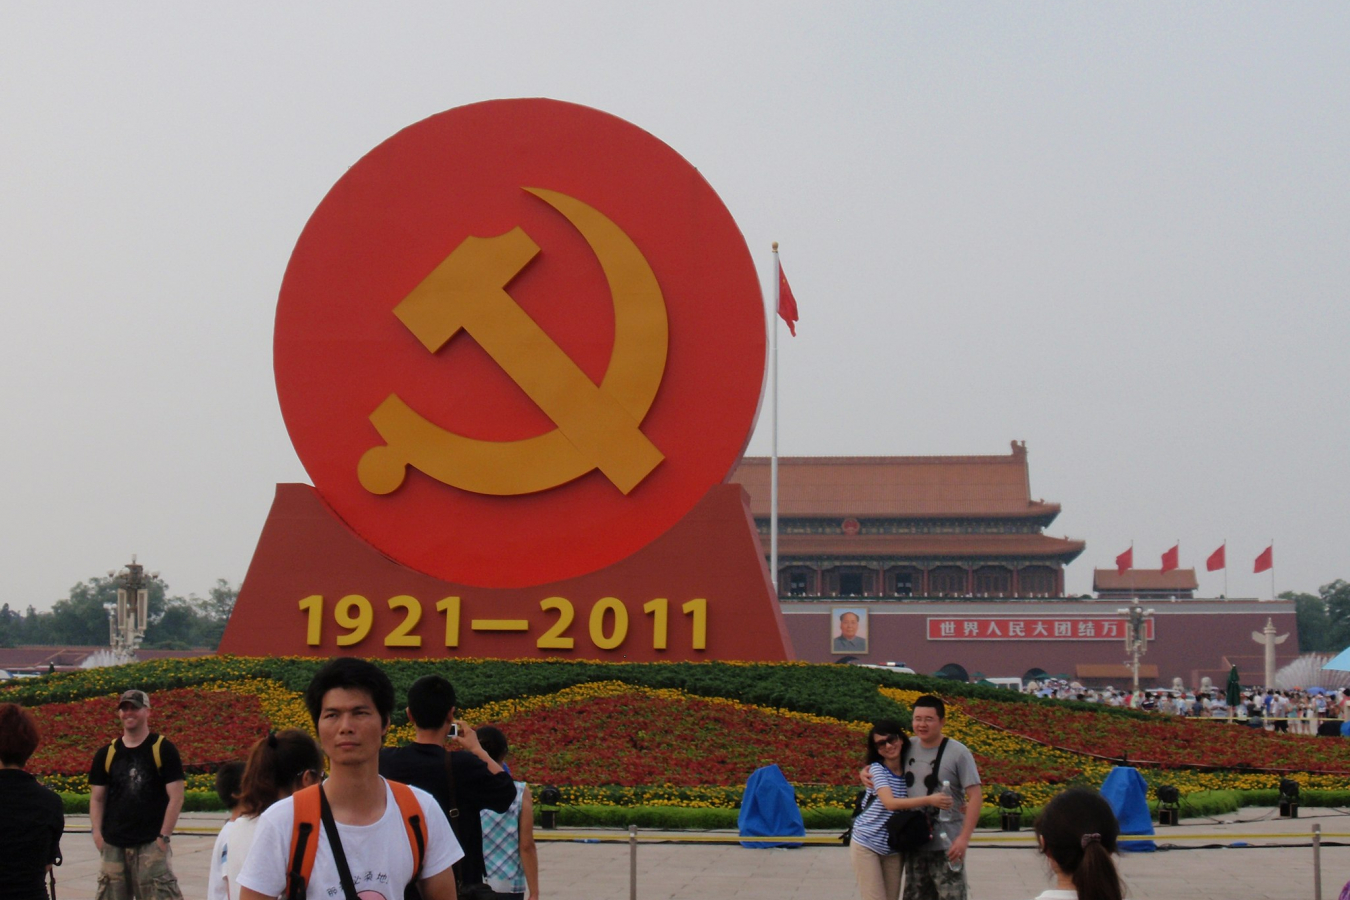 A large temporary monument in Tiananmen Square marking the 90th anniversary of the Chinese Communist Party. 26 July 2011